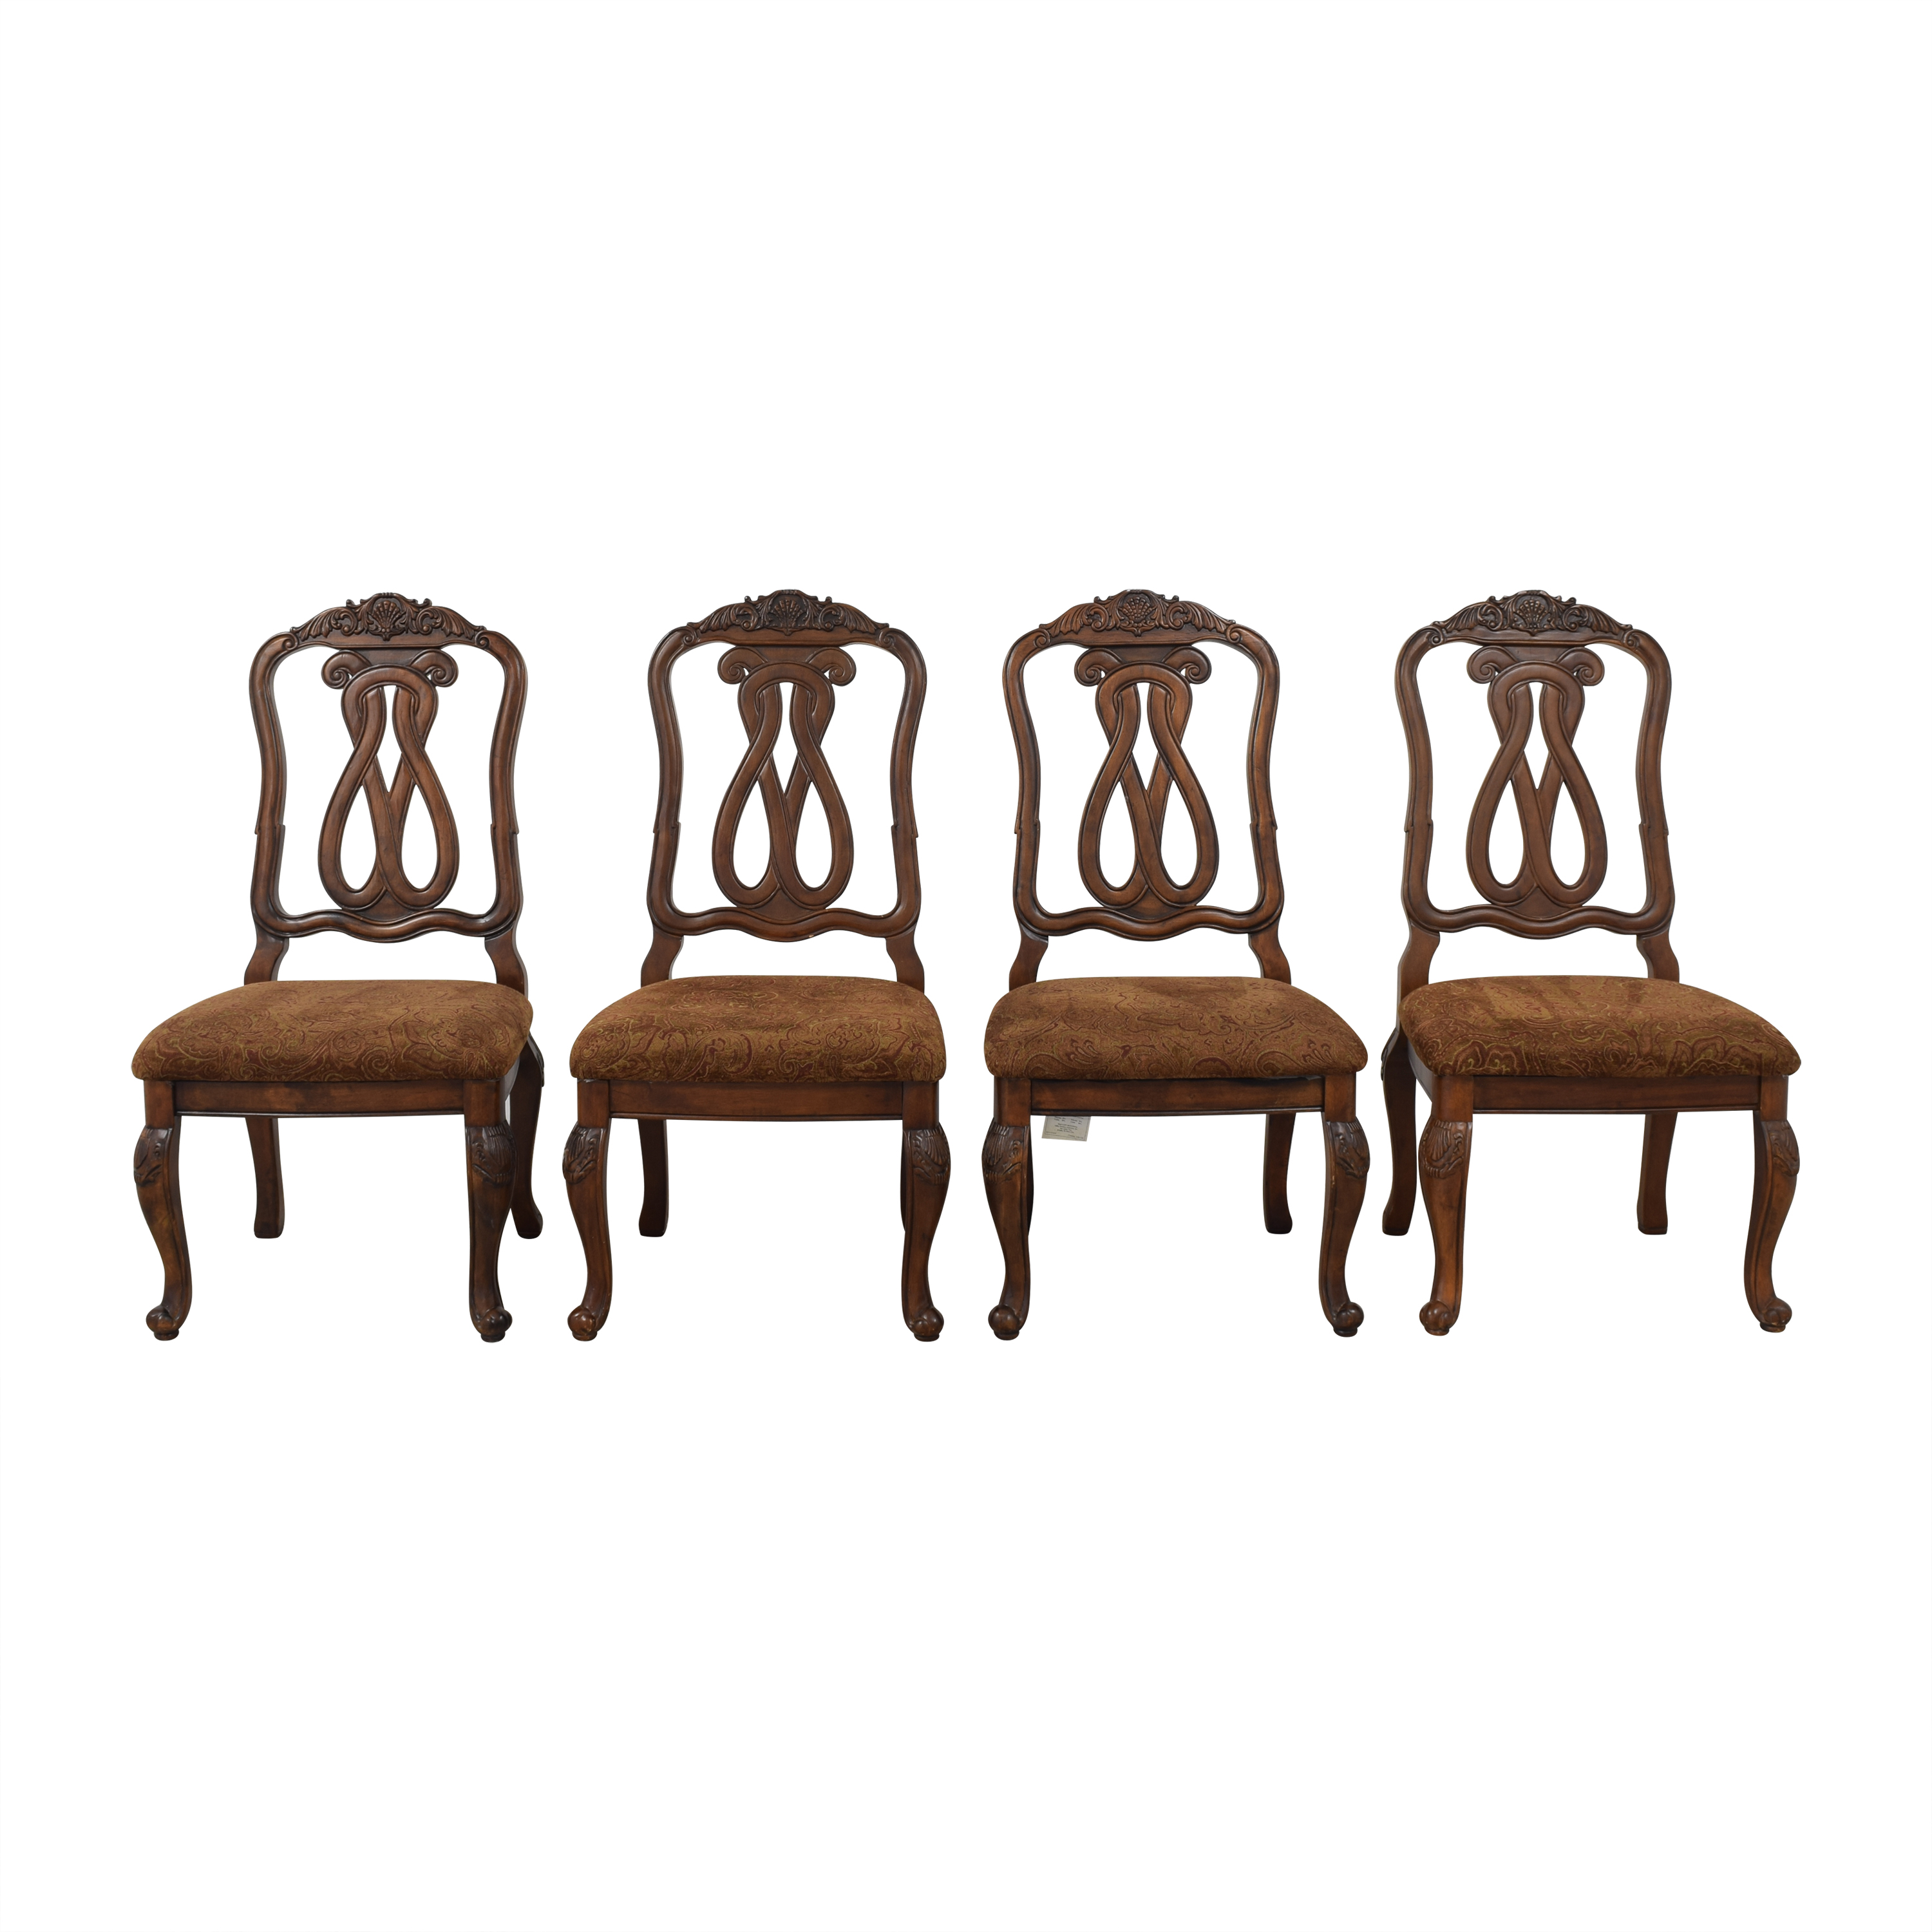 Ashley Furniture Ashley Furniture North Shore Side Chairs  brown